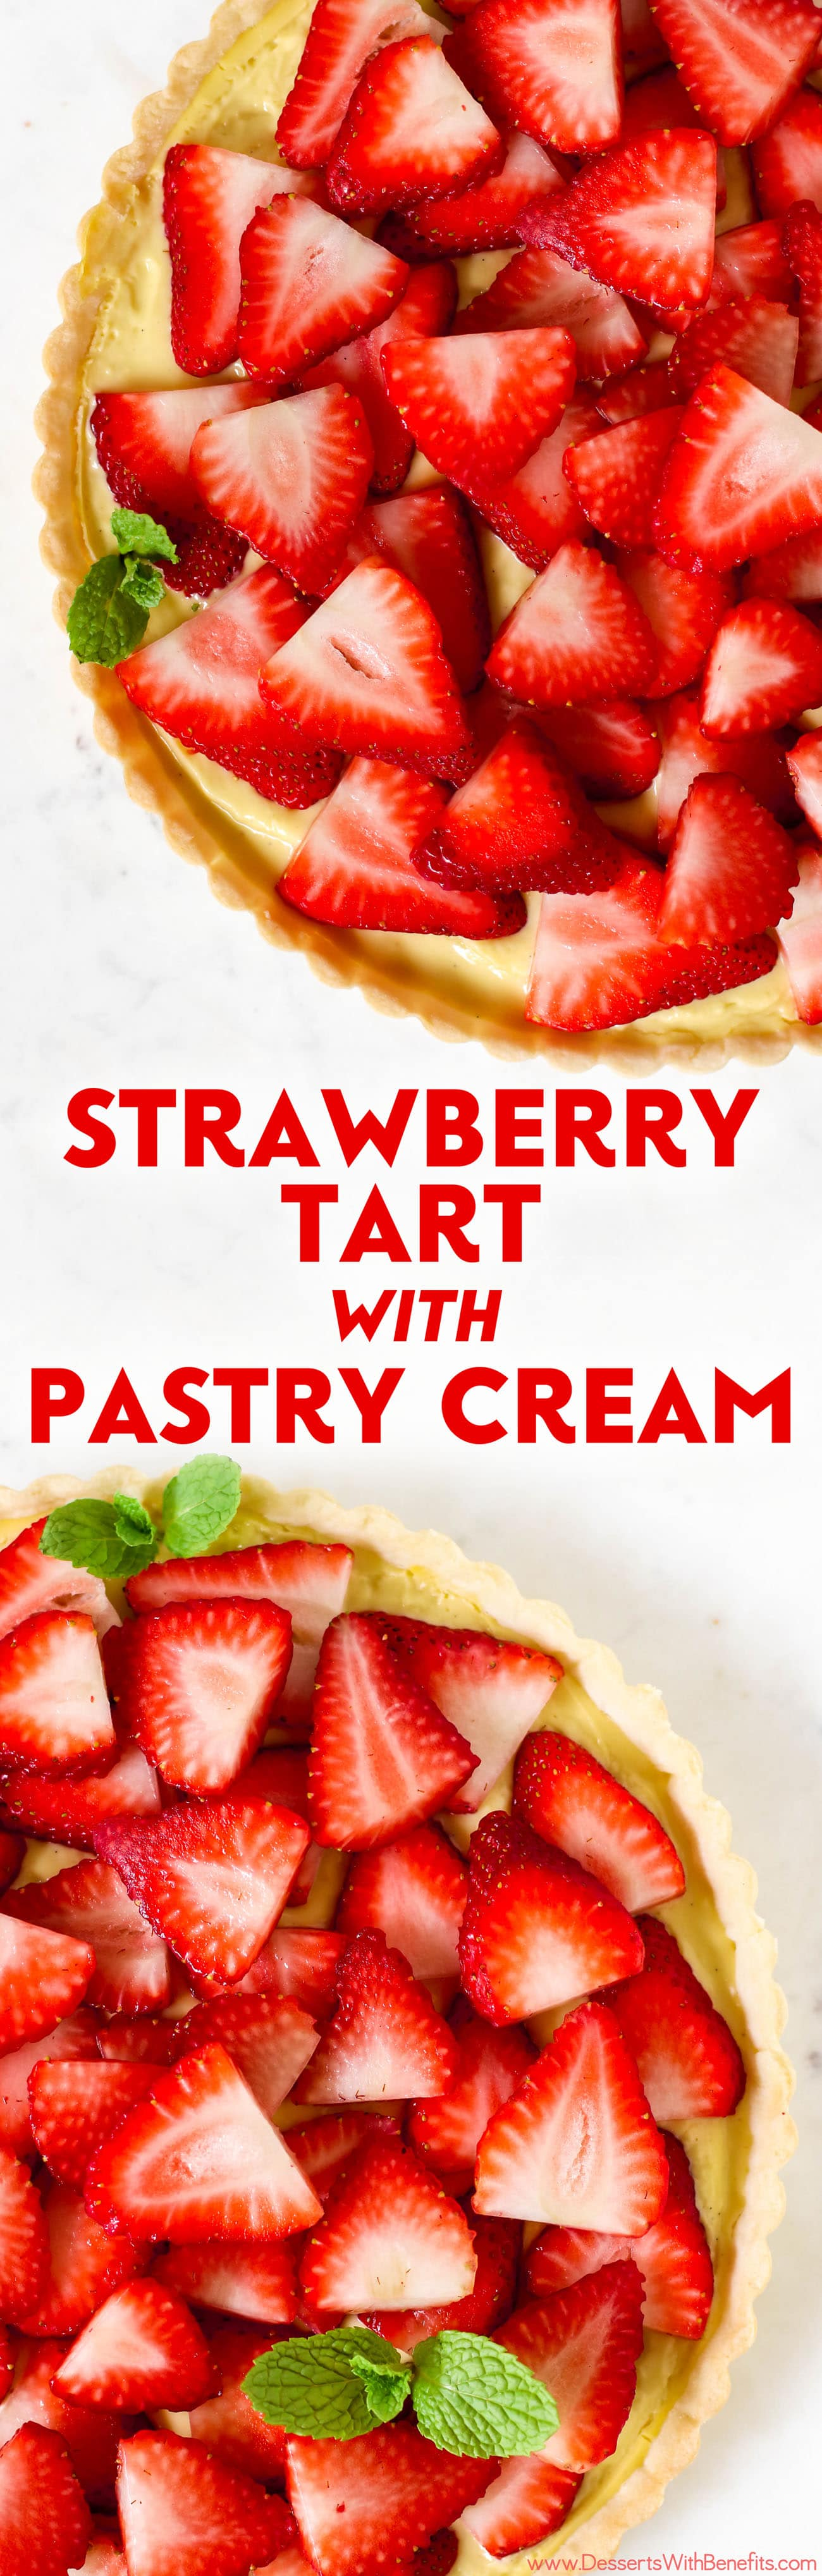 This beautiful Strawberry Tart has a rich and flavorful pie crust, the creamiest, vanilla bean-infused Pastry Cream, and is topped off with sweet, freshly sliced strawberries. It's hard to believe this delicious tart is dairy free and low sugar too!